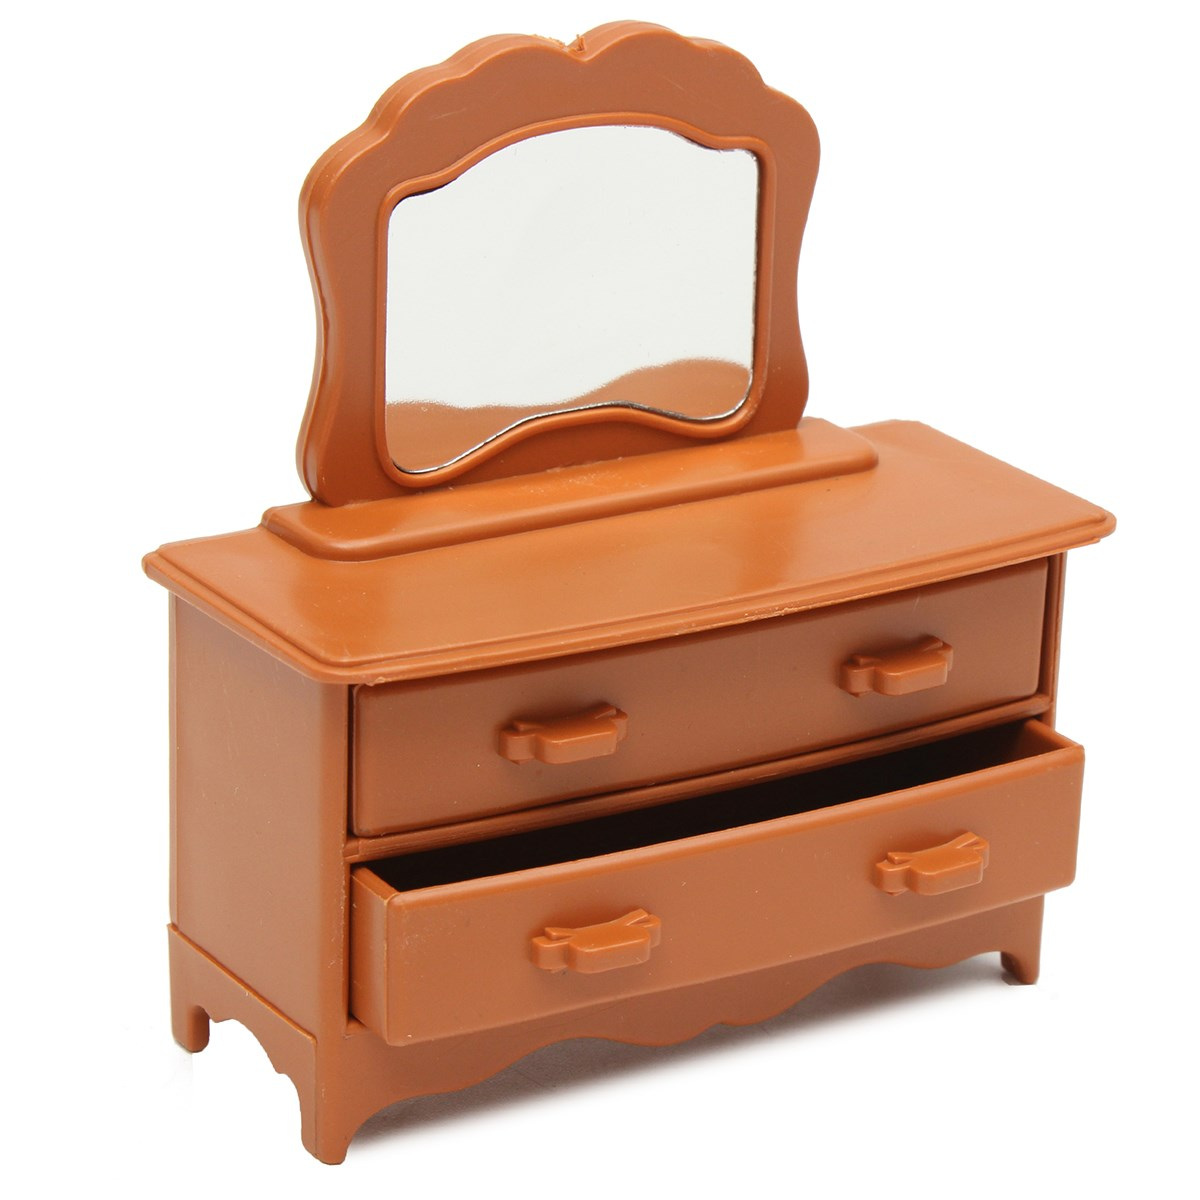 Miniature-Living-Room-Dressing-Table-Furniture-Sets-For-Mini-Children-DollHouse-Home-Decor-Kids-Toy-Doll-House-Toys-Gift-4